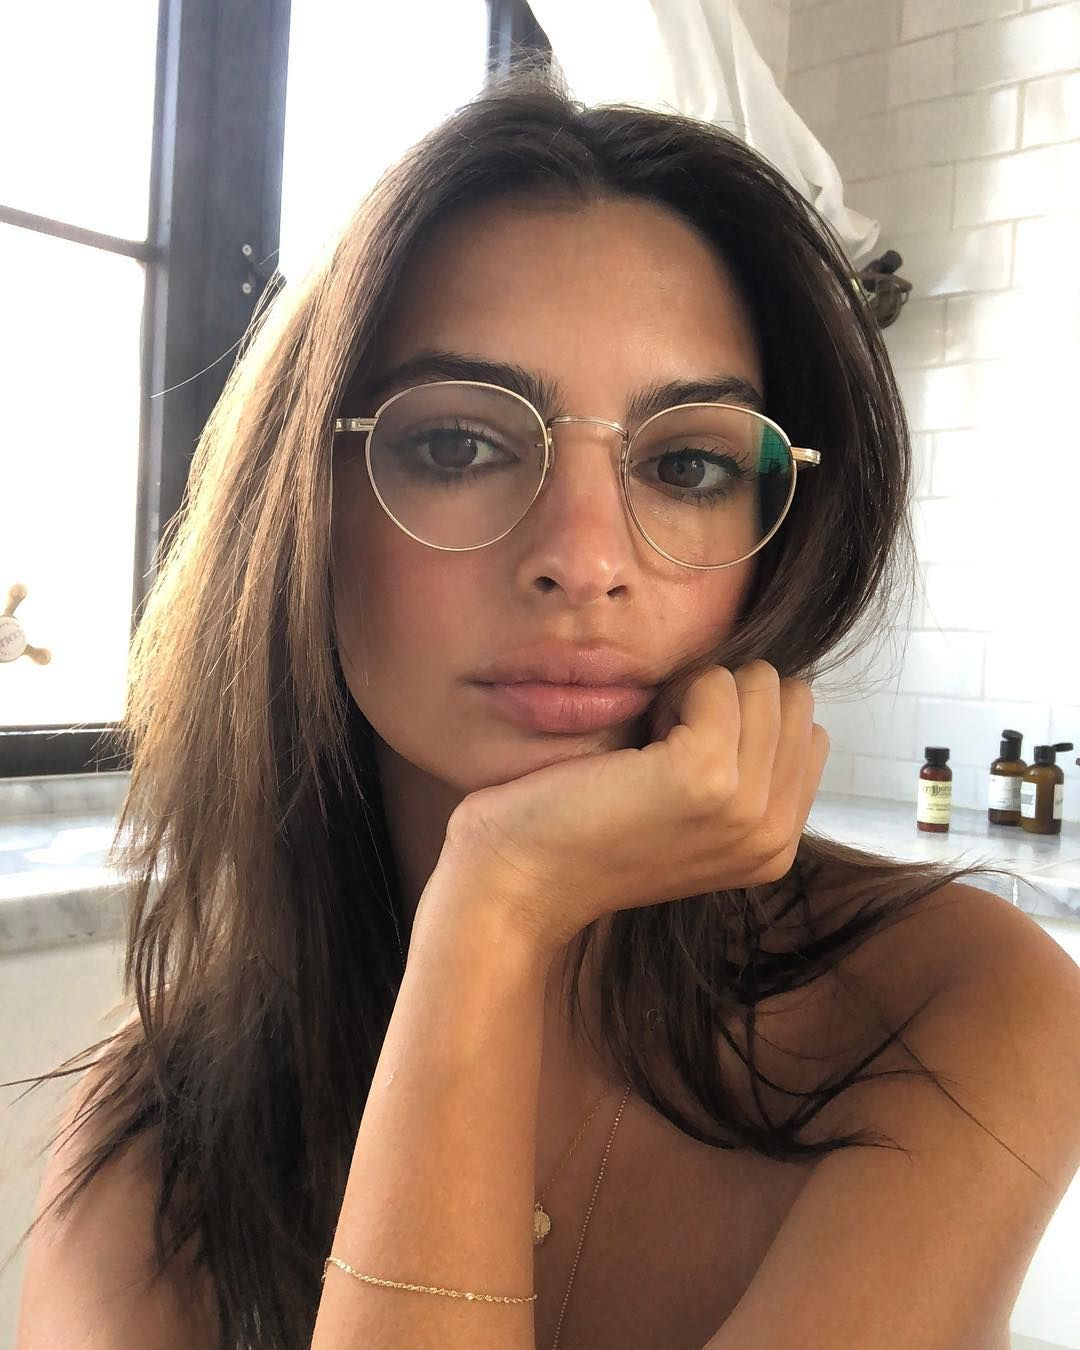 38b1c2820a36 Emily Ratajkowski wearing the GARRETT LEIGHT    WILSON M. Wilson M offers  an iconic round metal shape with filagree detailing and acetate temples.